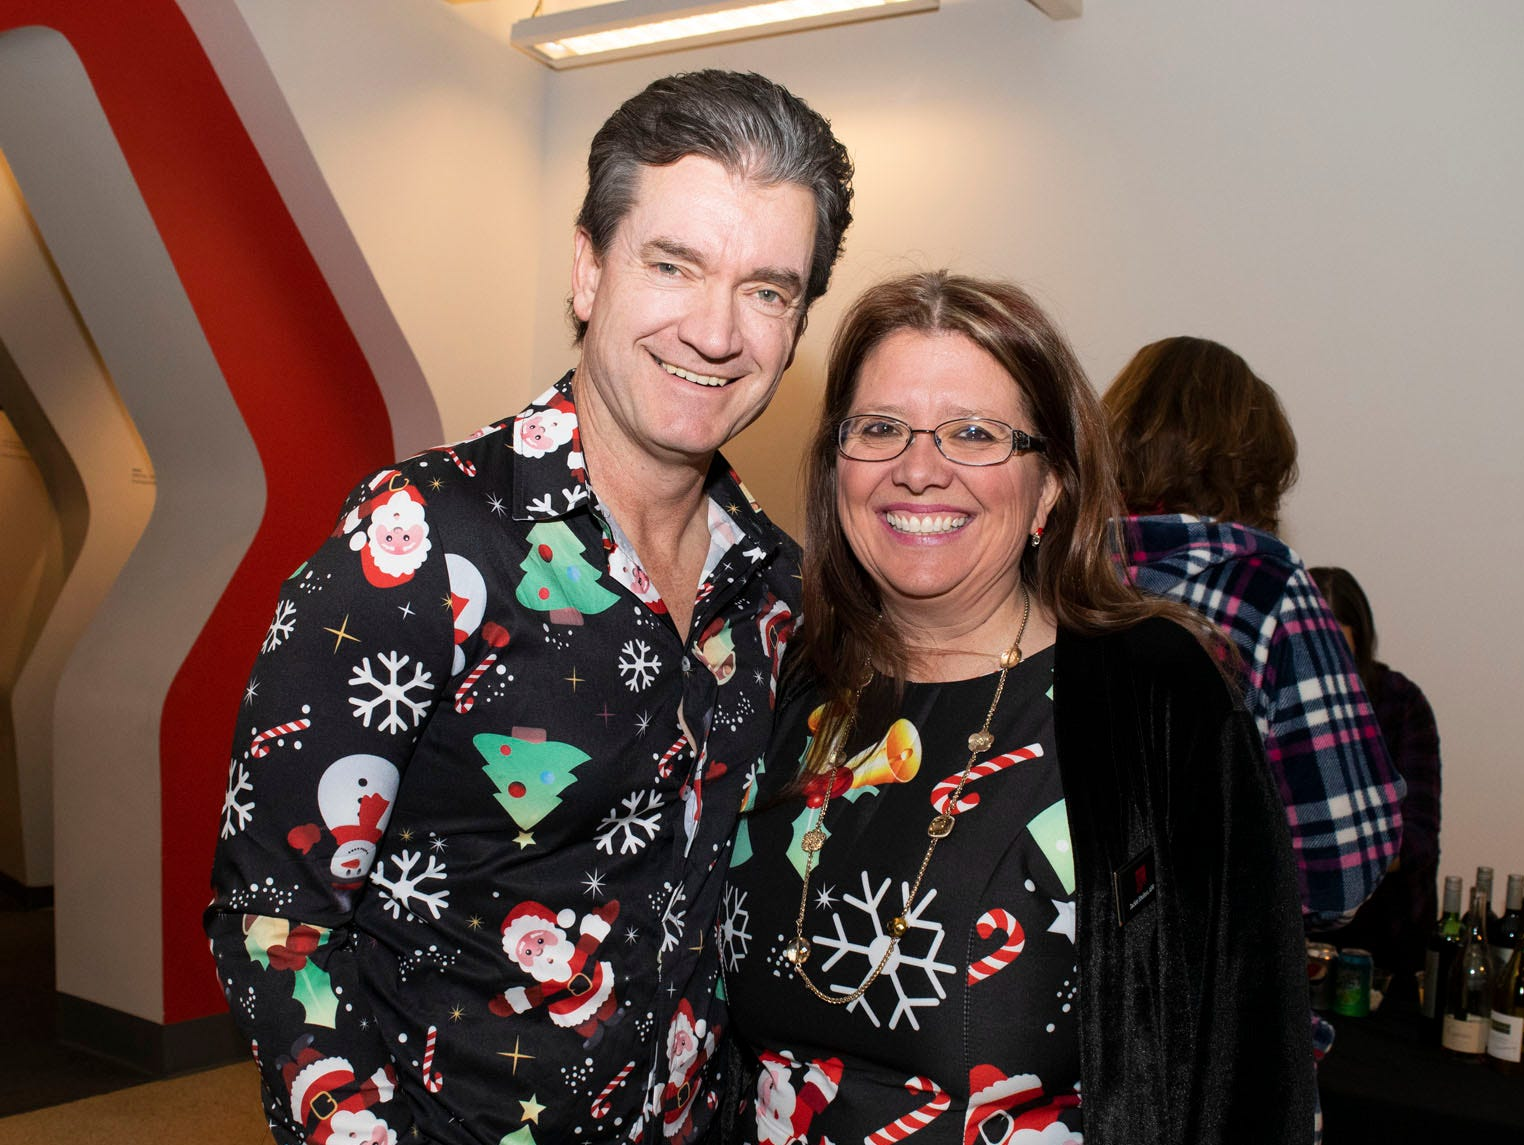 Clay Hall and Jackie Shelton attend Mingle Bells 2018 at the Discovery Museum on Thursday, Dec. 6, 2018. Reno, Nev.